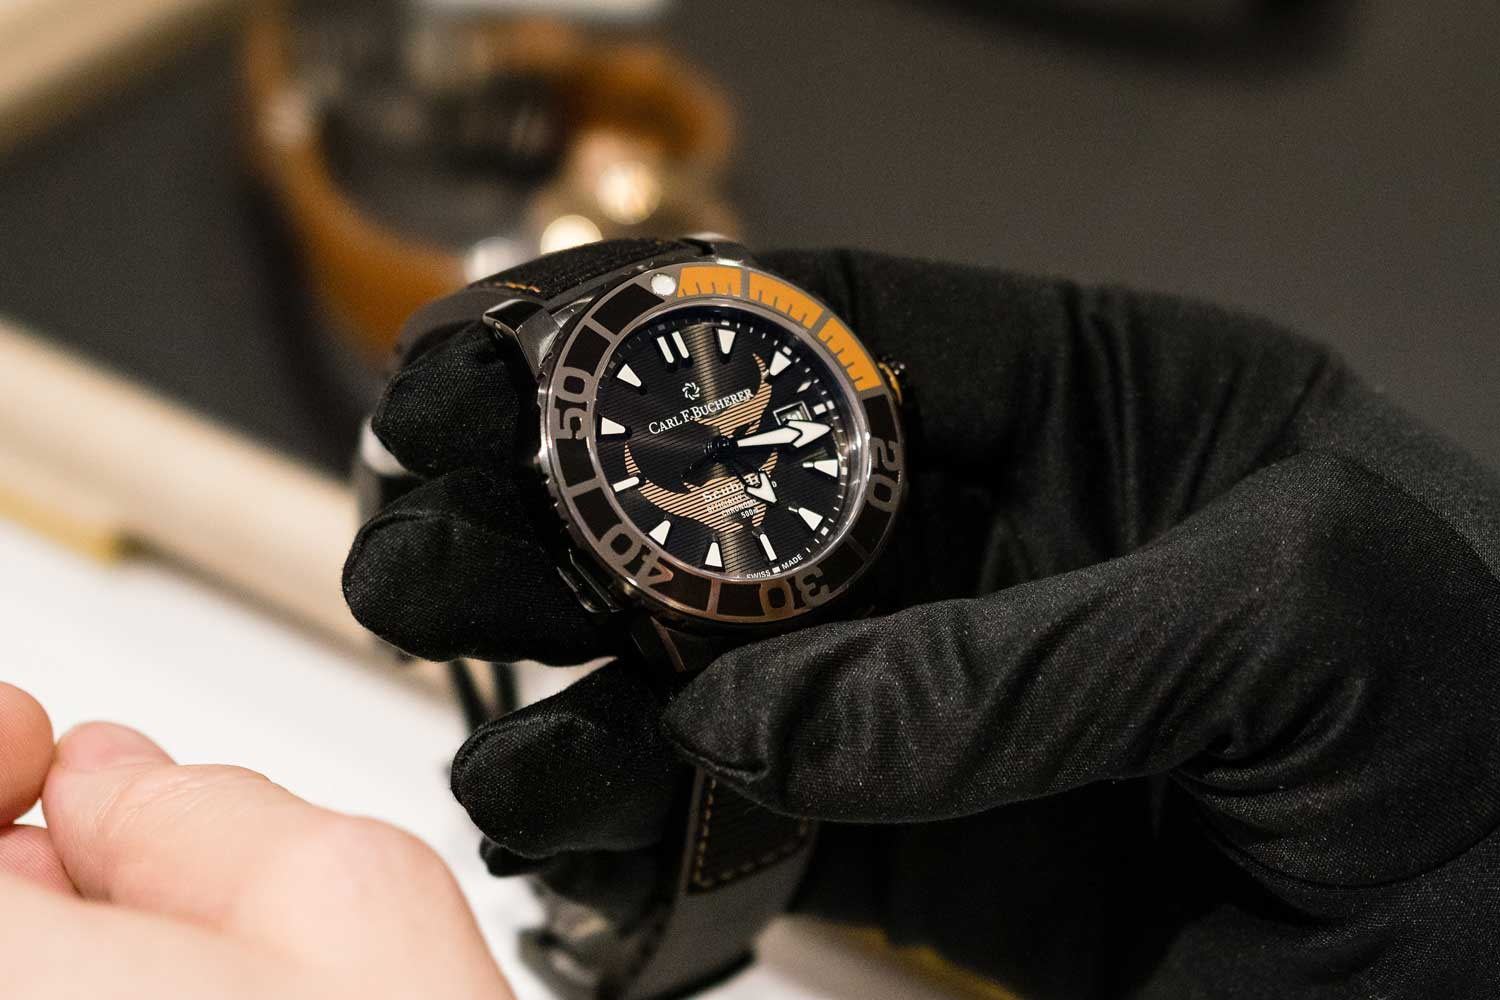 The Patravi ScubaTec Black Manta Special Edition was launched at Baselworld 2019 and is Carl F. Bucherer's second special- edition timepiece dedicated to the Manta Trust